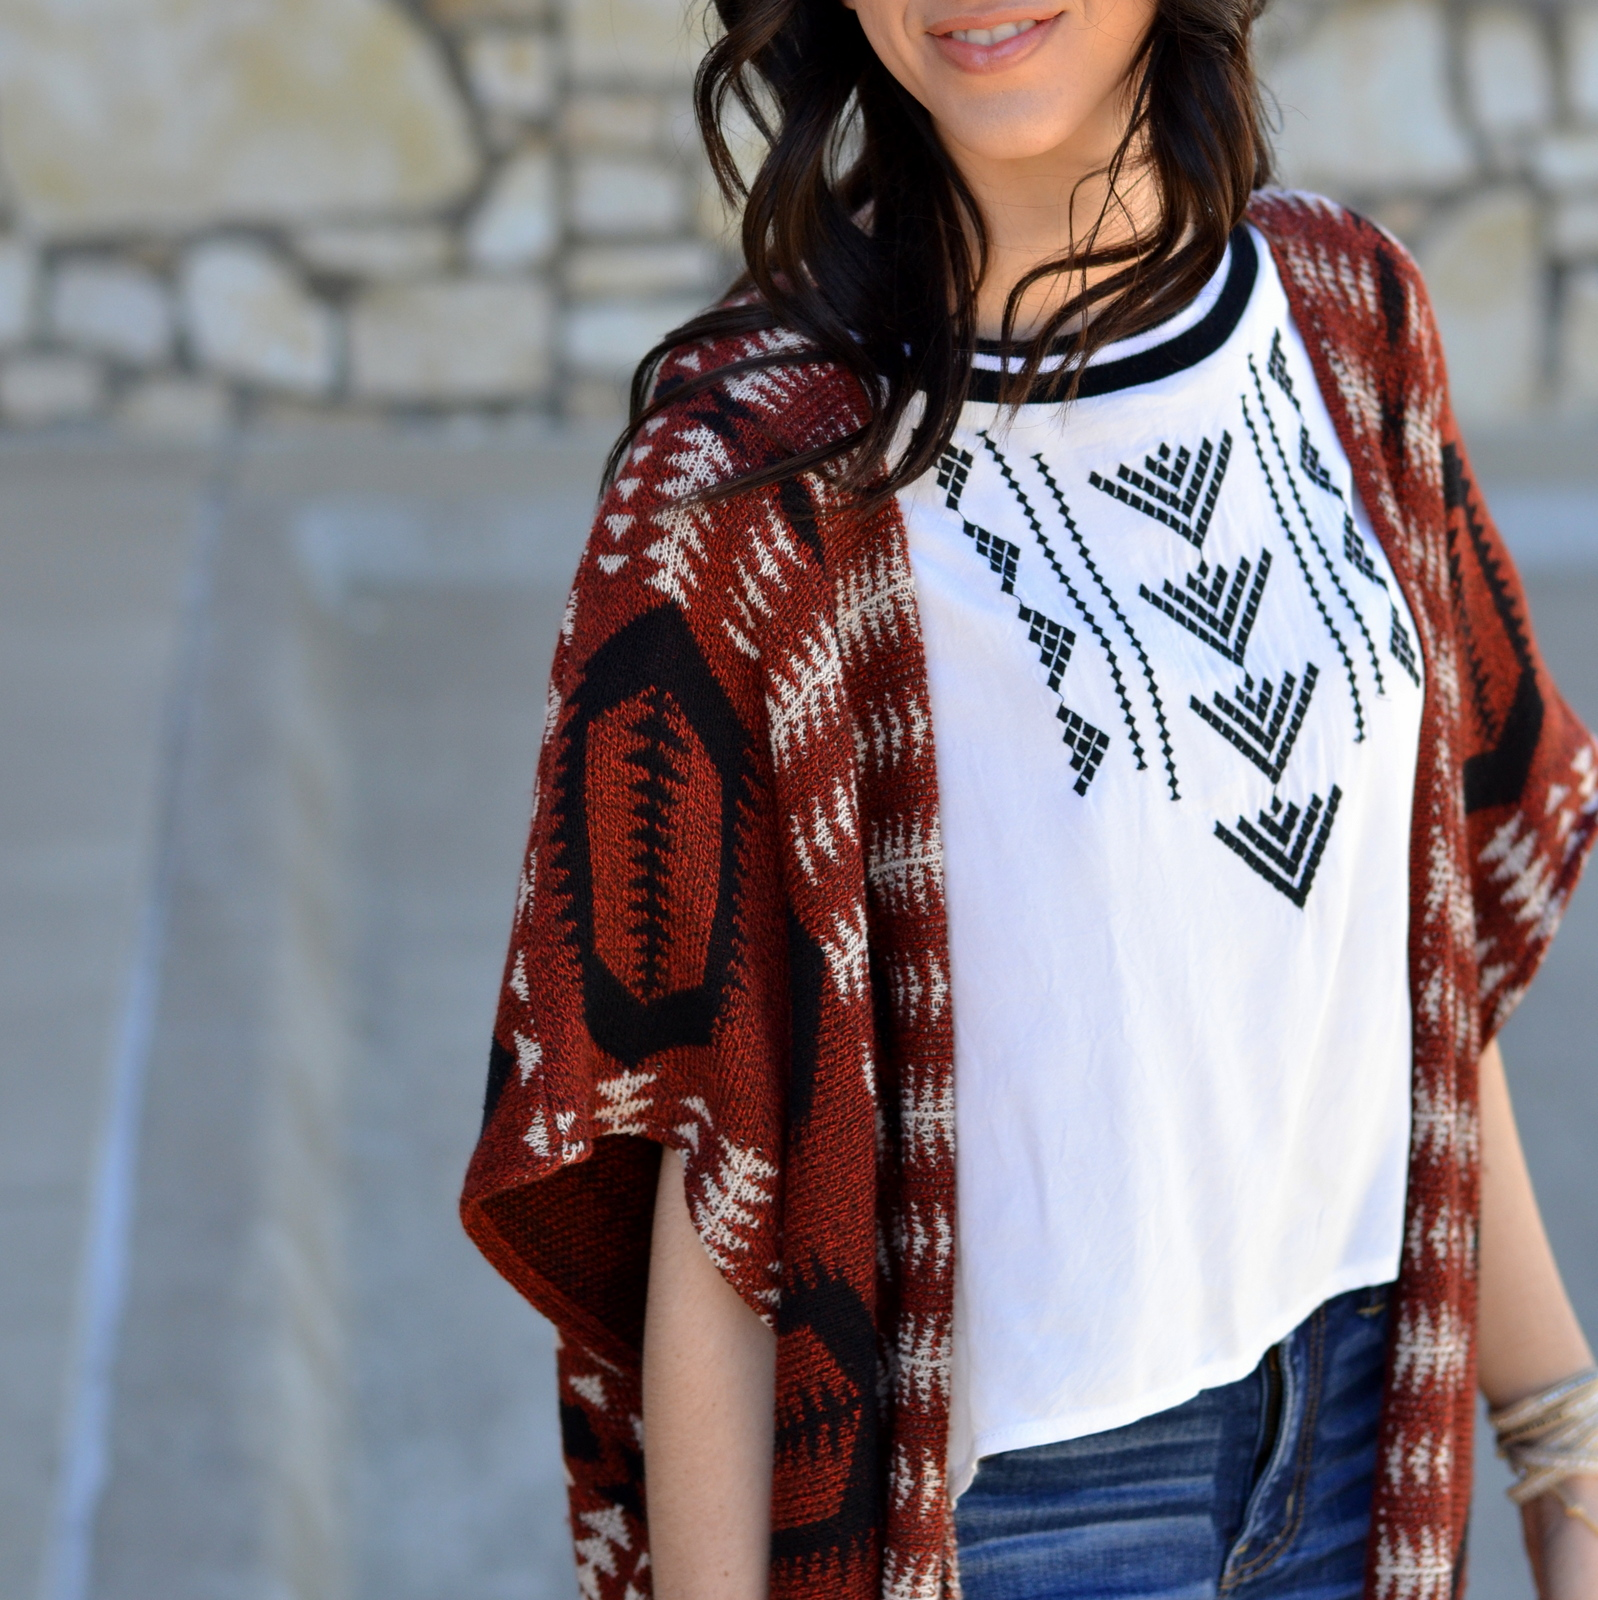 How to style an aztec cardigan and crop top